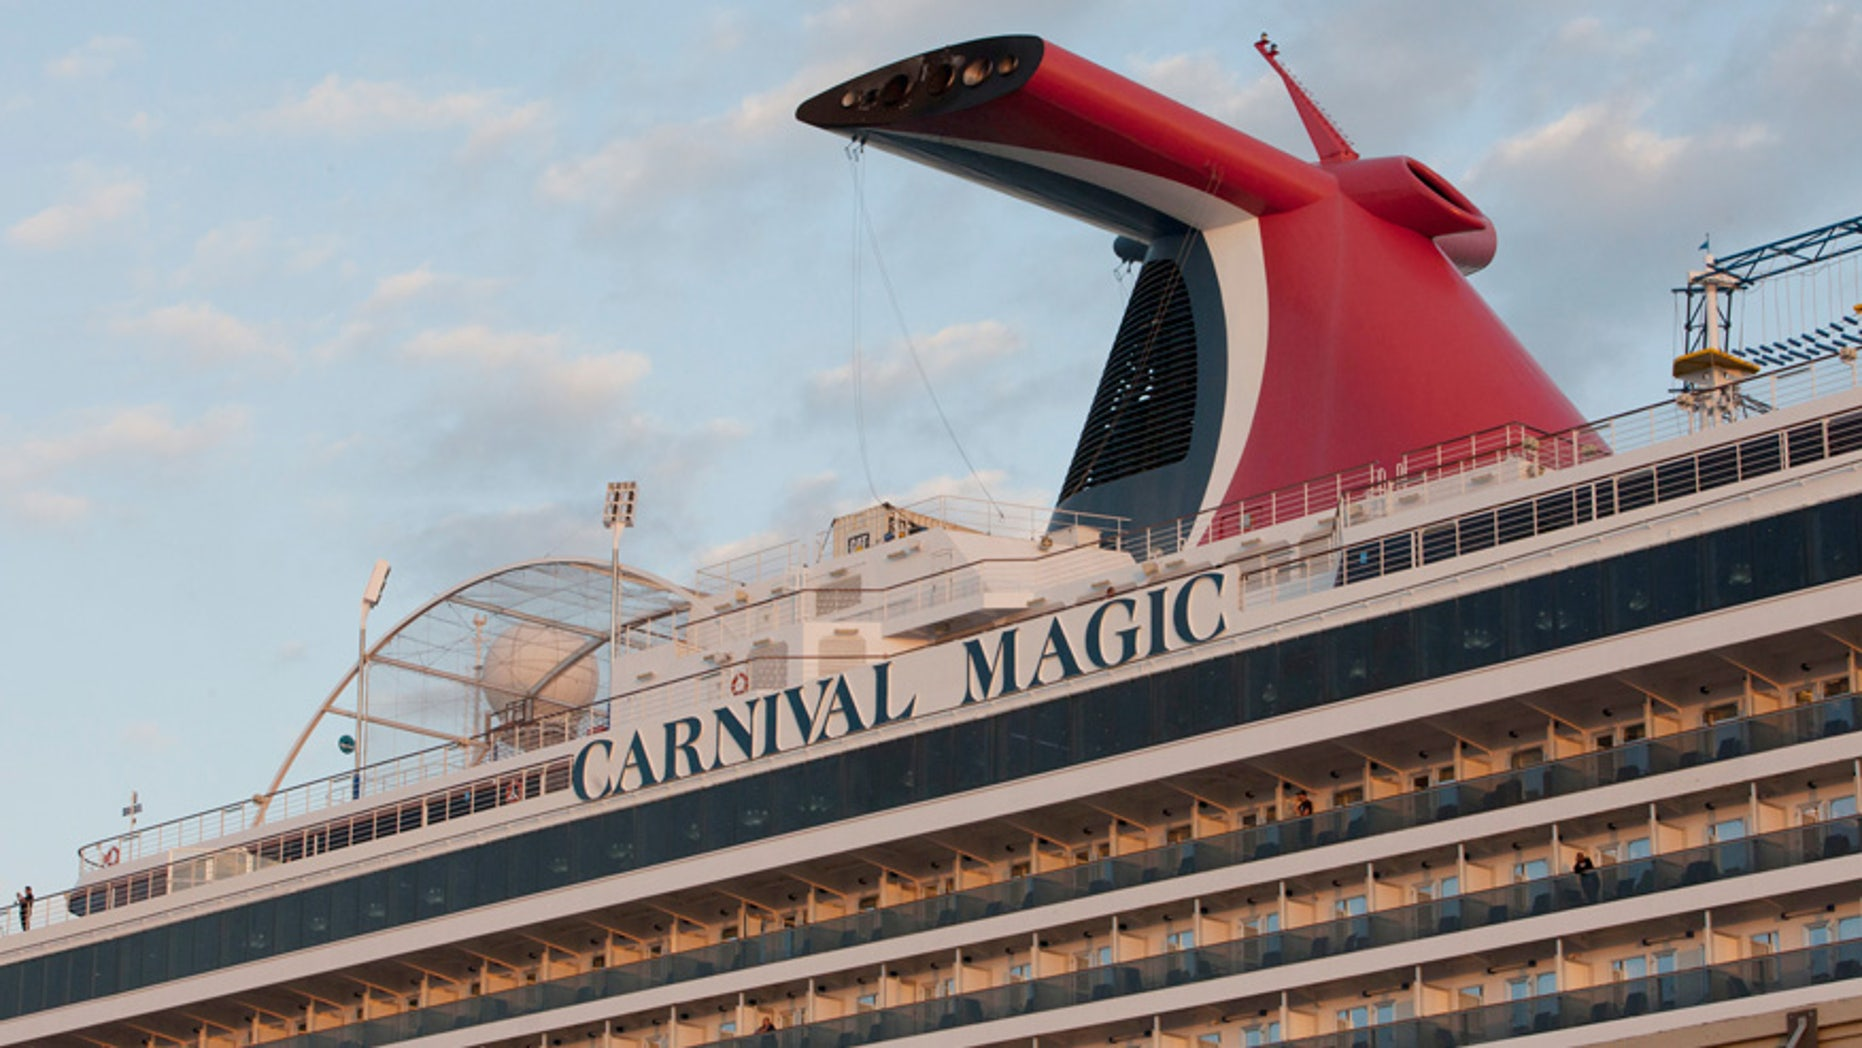 The Carnival Magic cruise ship is seen reaching port in Galveston, Texas, in 2014.